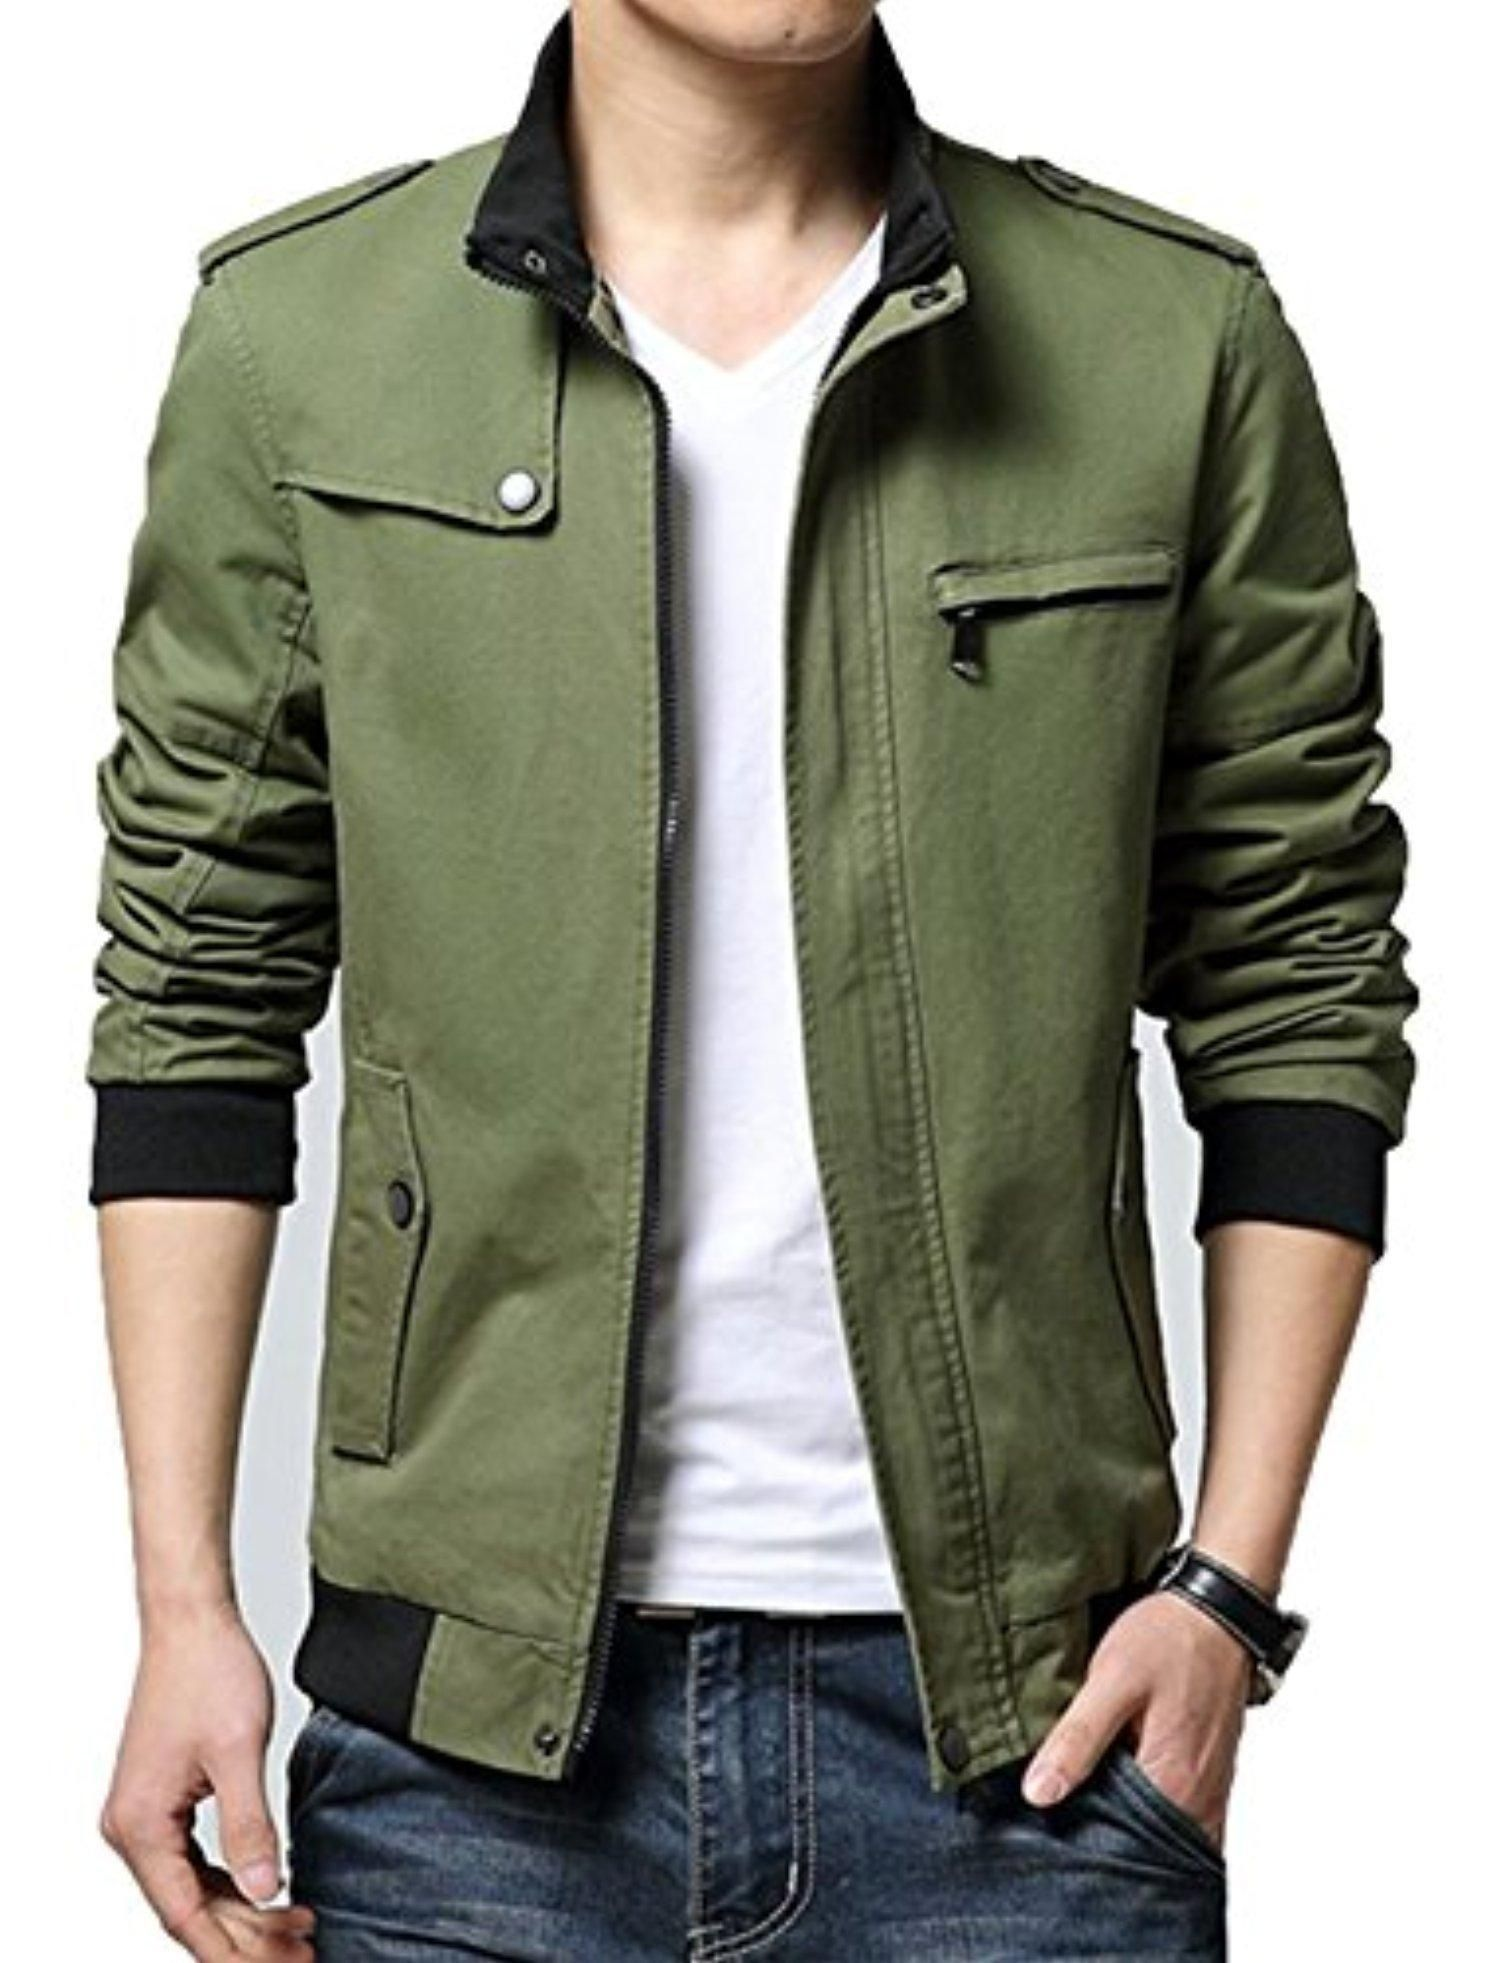 XueYin Men's Solid Cotton Casual Wear Stand Collar Jacket(Army green,XS size) - Brought to you by Avarsha.com